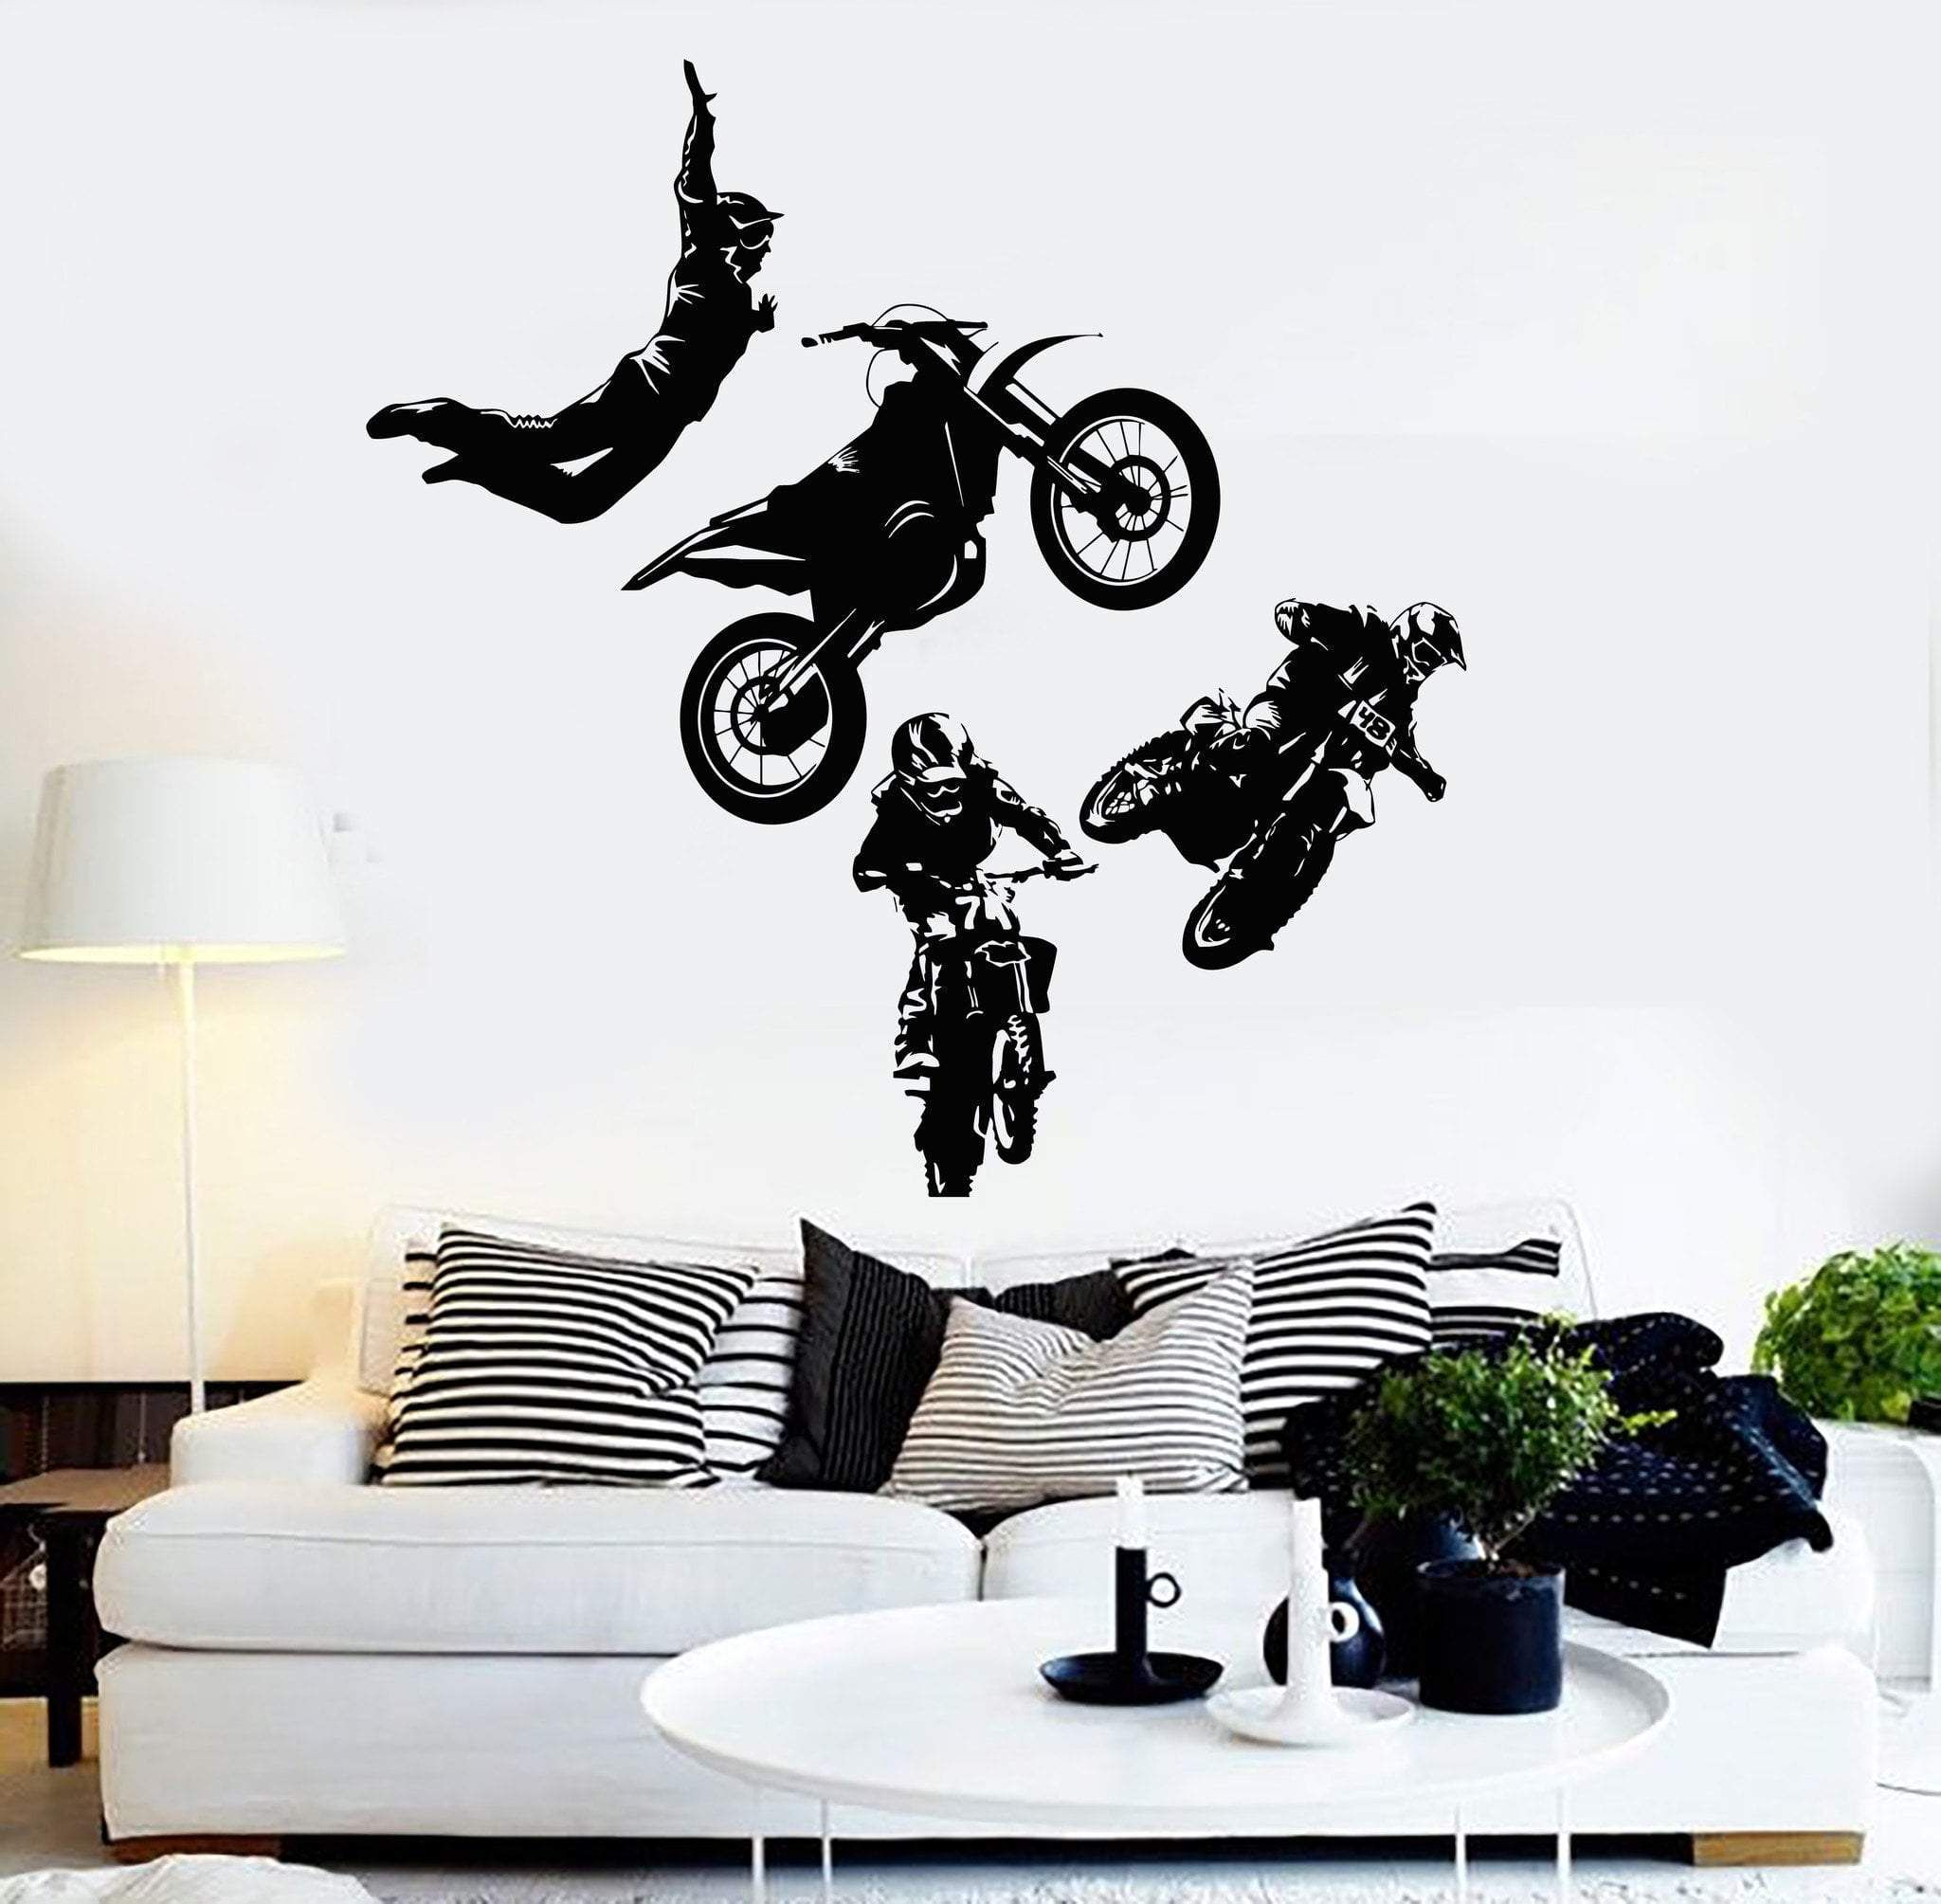 Vinyl Wall Decal Freestyle Motocross Motorcycle Racer